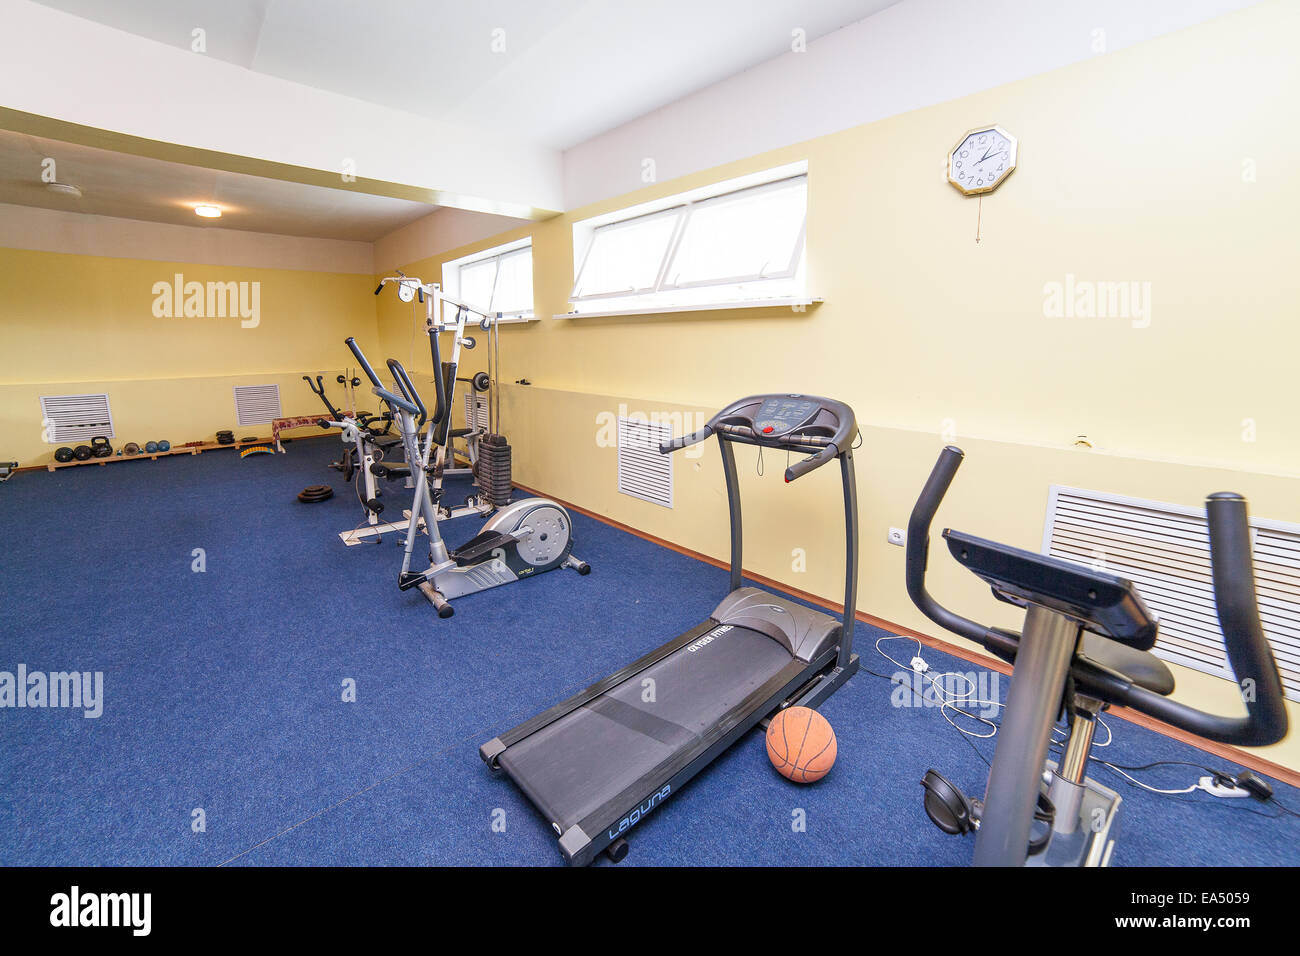 Traineger equipments in fitness center, gym - Stock Image